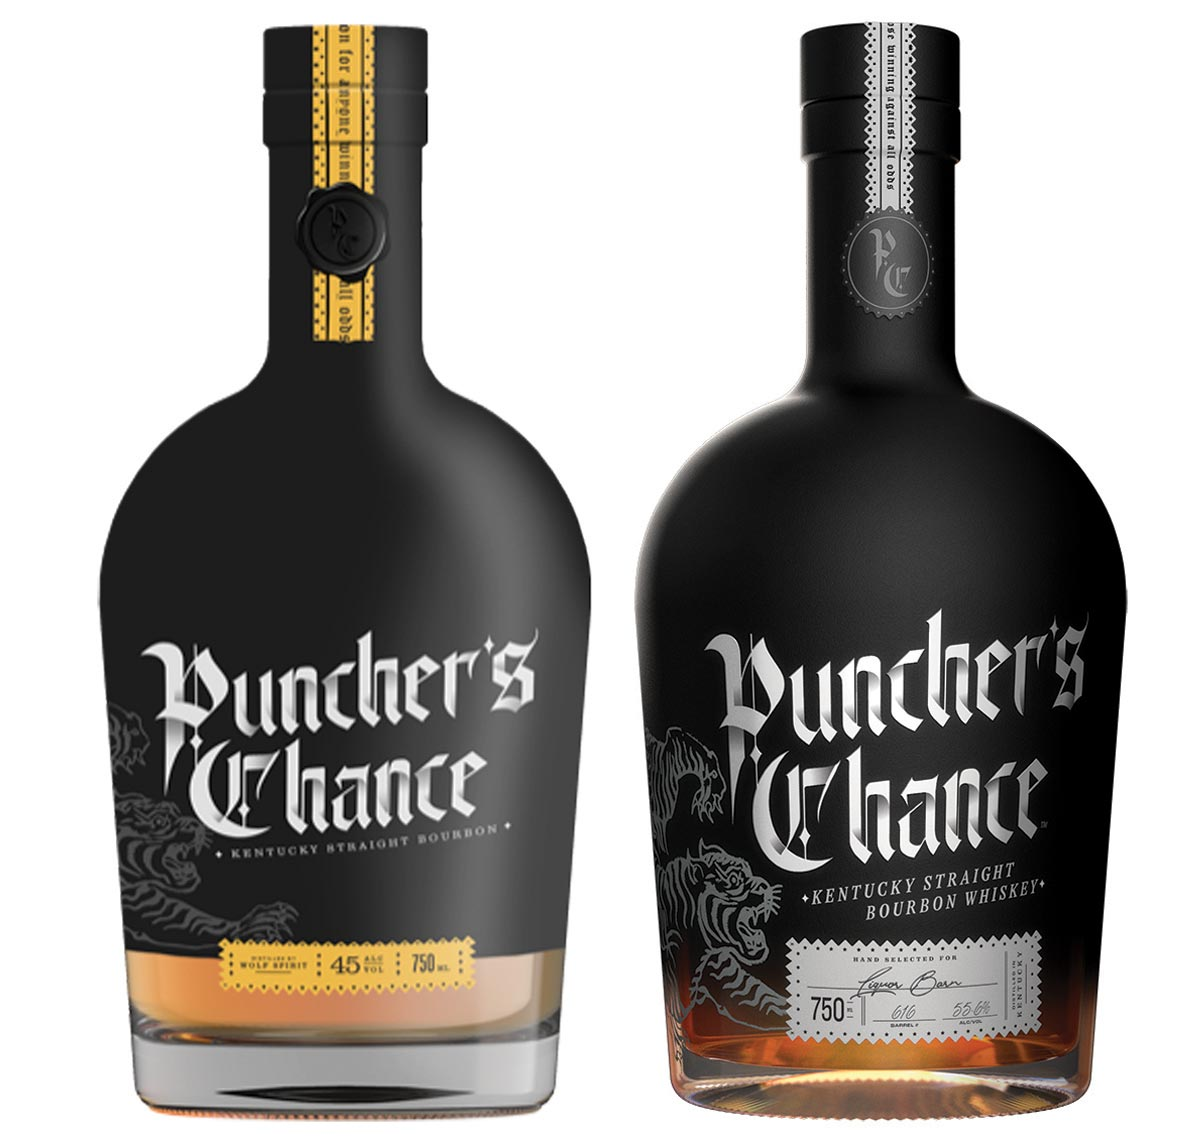 Puncher's Chance Private Barrel Program Launches in Connecticut